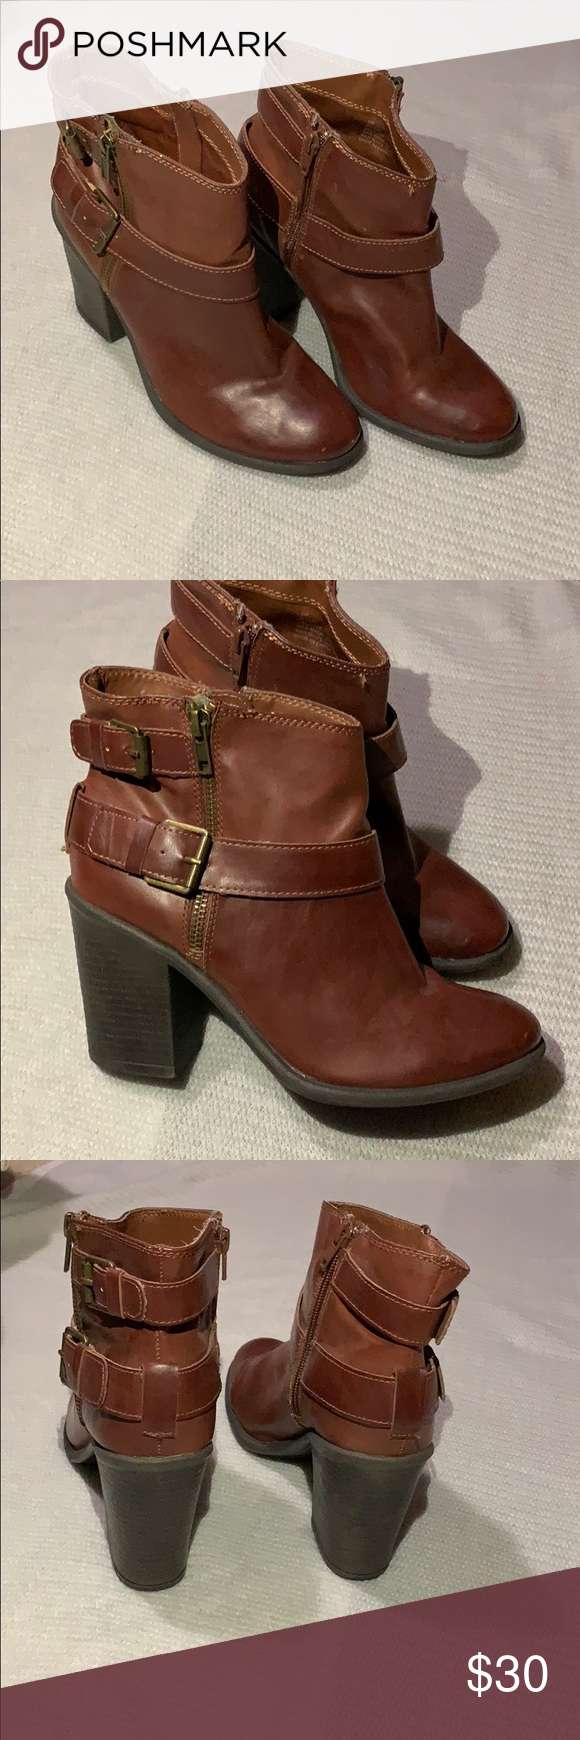 Red/Brown High Heel Booties Brand new! So cute! They look great with dark/light skinny jeans and long dresses! Shoes Ankle Boots & Booties #skinnyjeansandankleboots